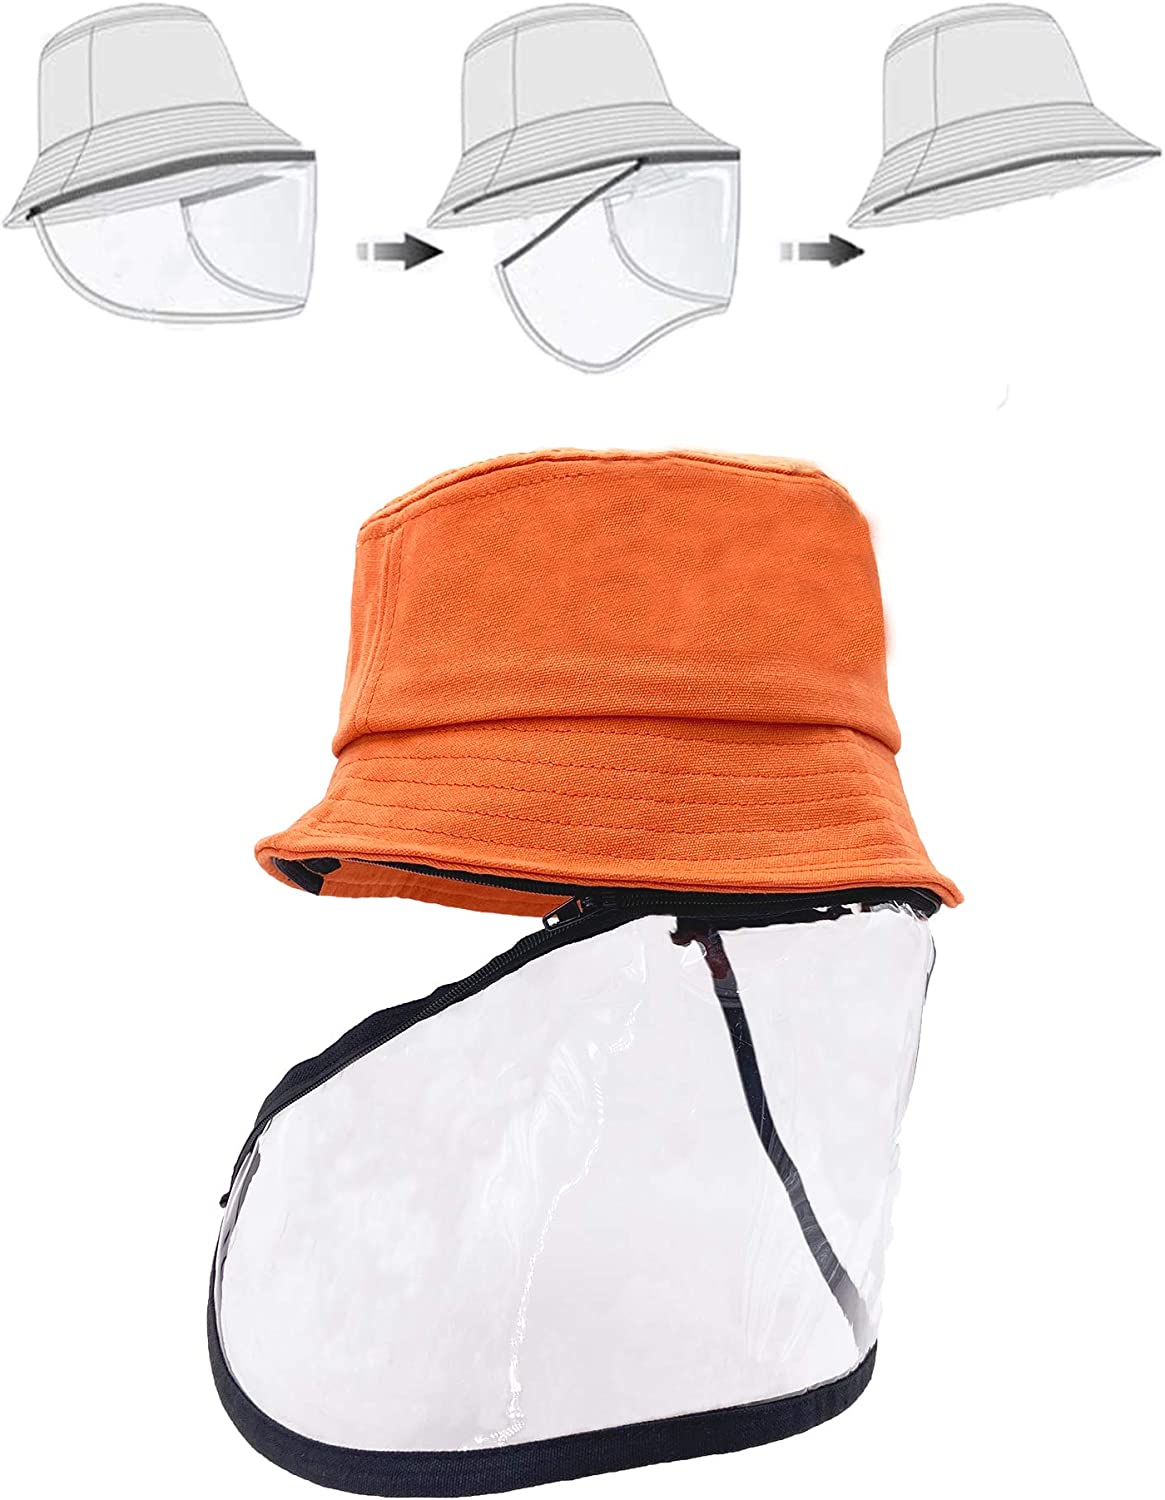 Safety Facial Protective Bucket Hat Outdoor Boonie Fisherman Hat For Adults Kids